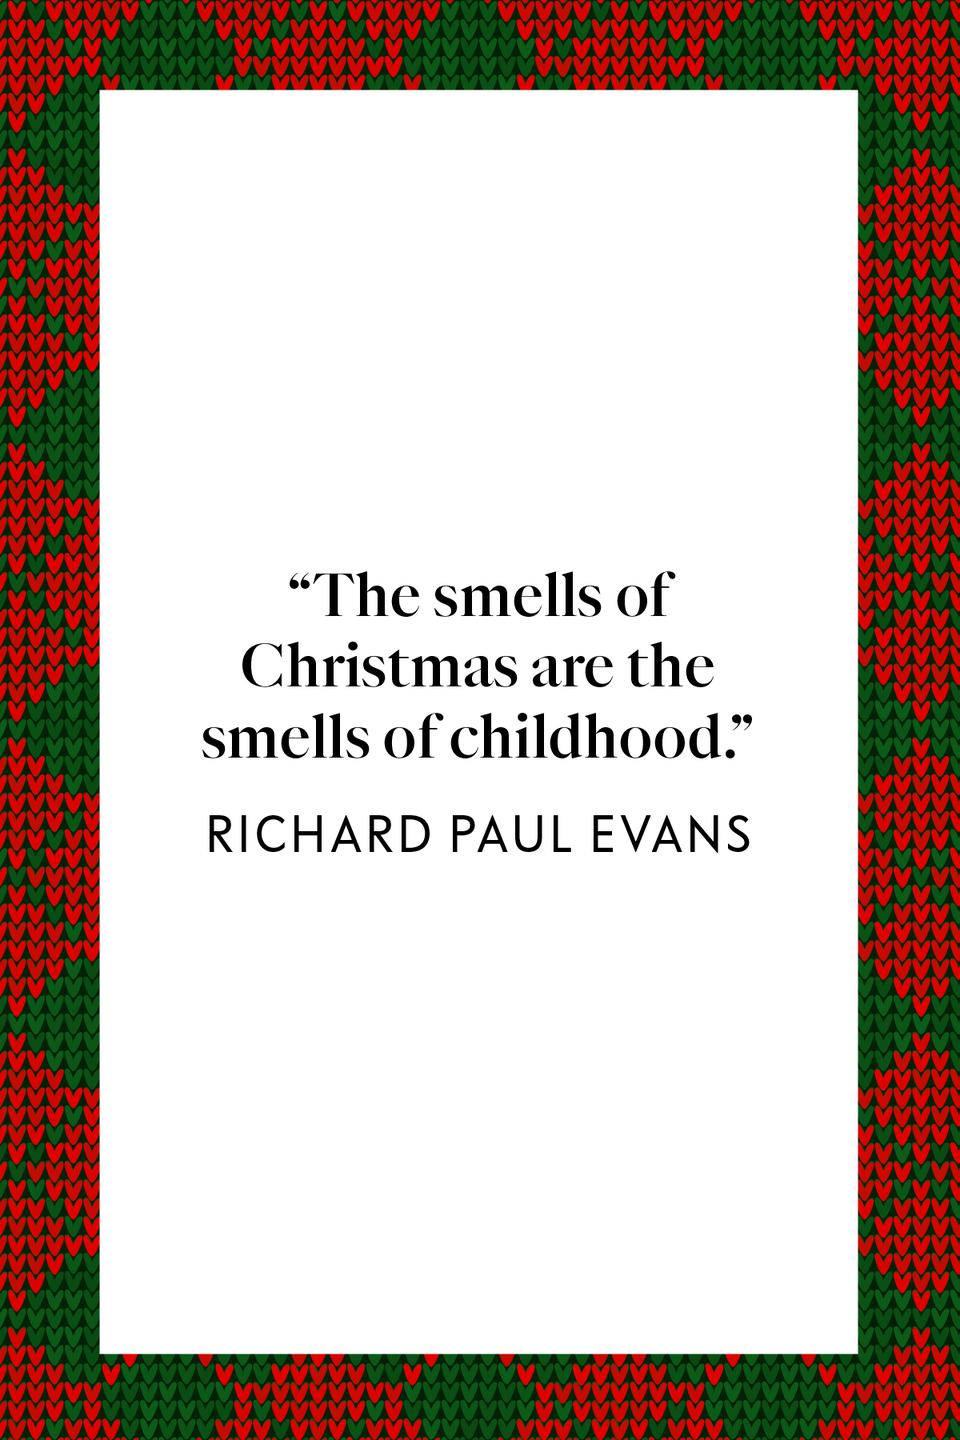 "<p>""The smells of Christmas are the smells of childhood,"" <em>New York Times </em>bestselling author Richard Paul Evans wrote in his most popular novel, <em><a href=""https://www.amazon.com/Christmas-Box-Richard-Paul-Evans/dp/0684814994?tag=syn-yahoo-20&ascsubtag=%5Bartid%7C10072.g.34536312%5Bsrc%7Cyahoo-us"" rel=""nofollow noopener"" target=""_blank"" data-ylk=""slk:The Christmas Box"" class=""link rapid-noclick-resp"">The Christmas Box</a></em>.</p>"